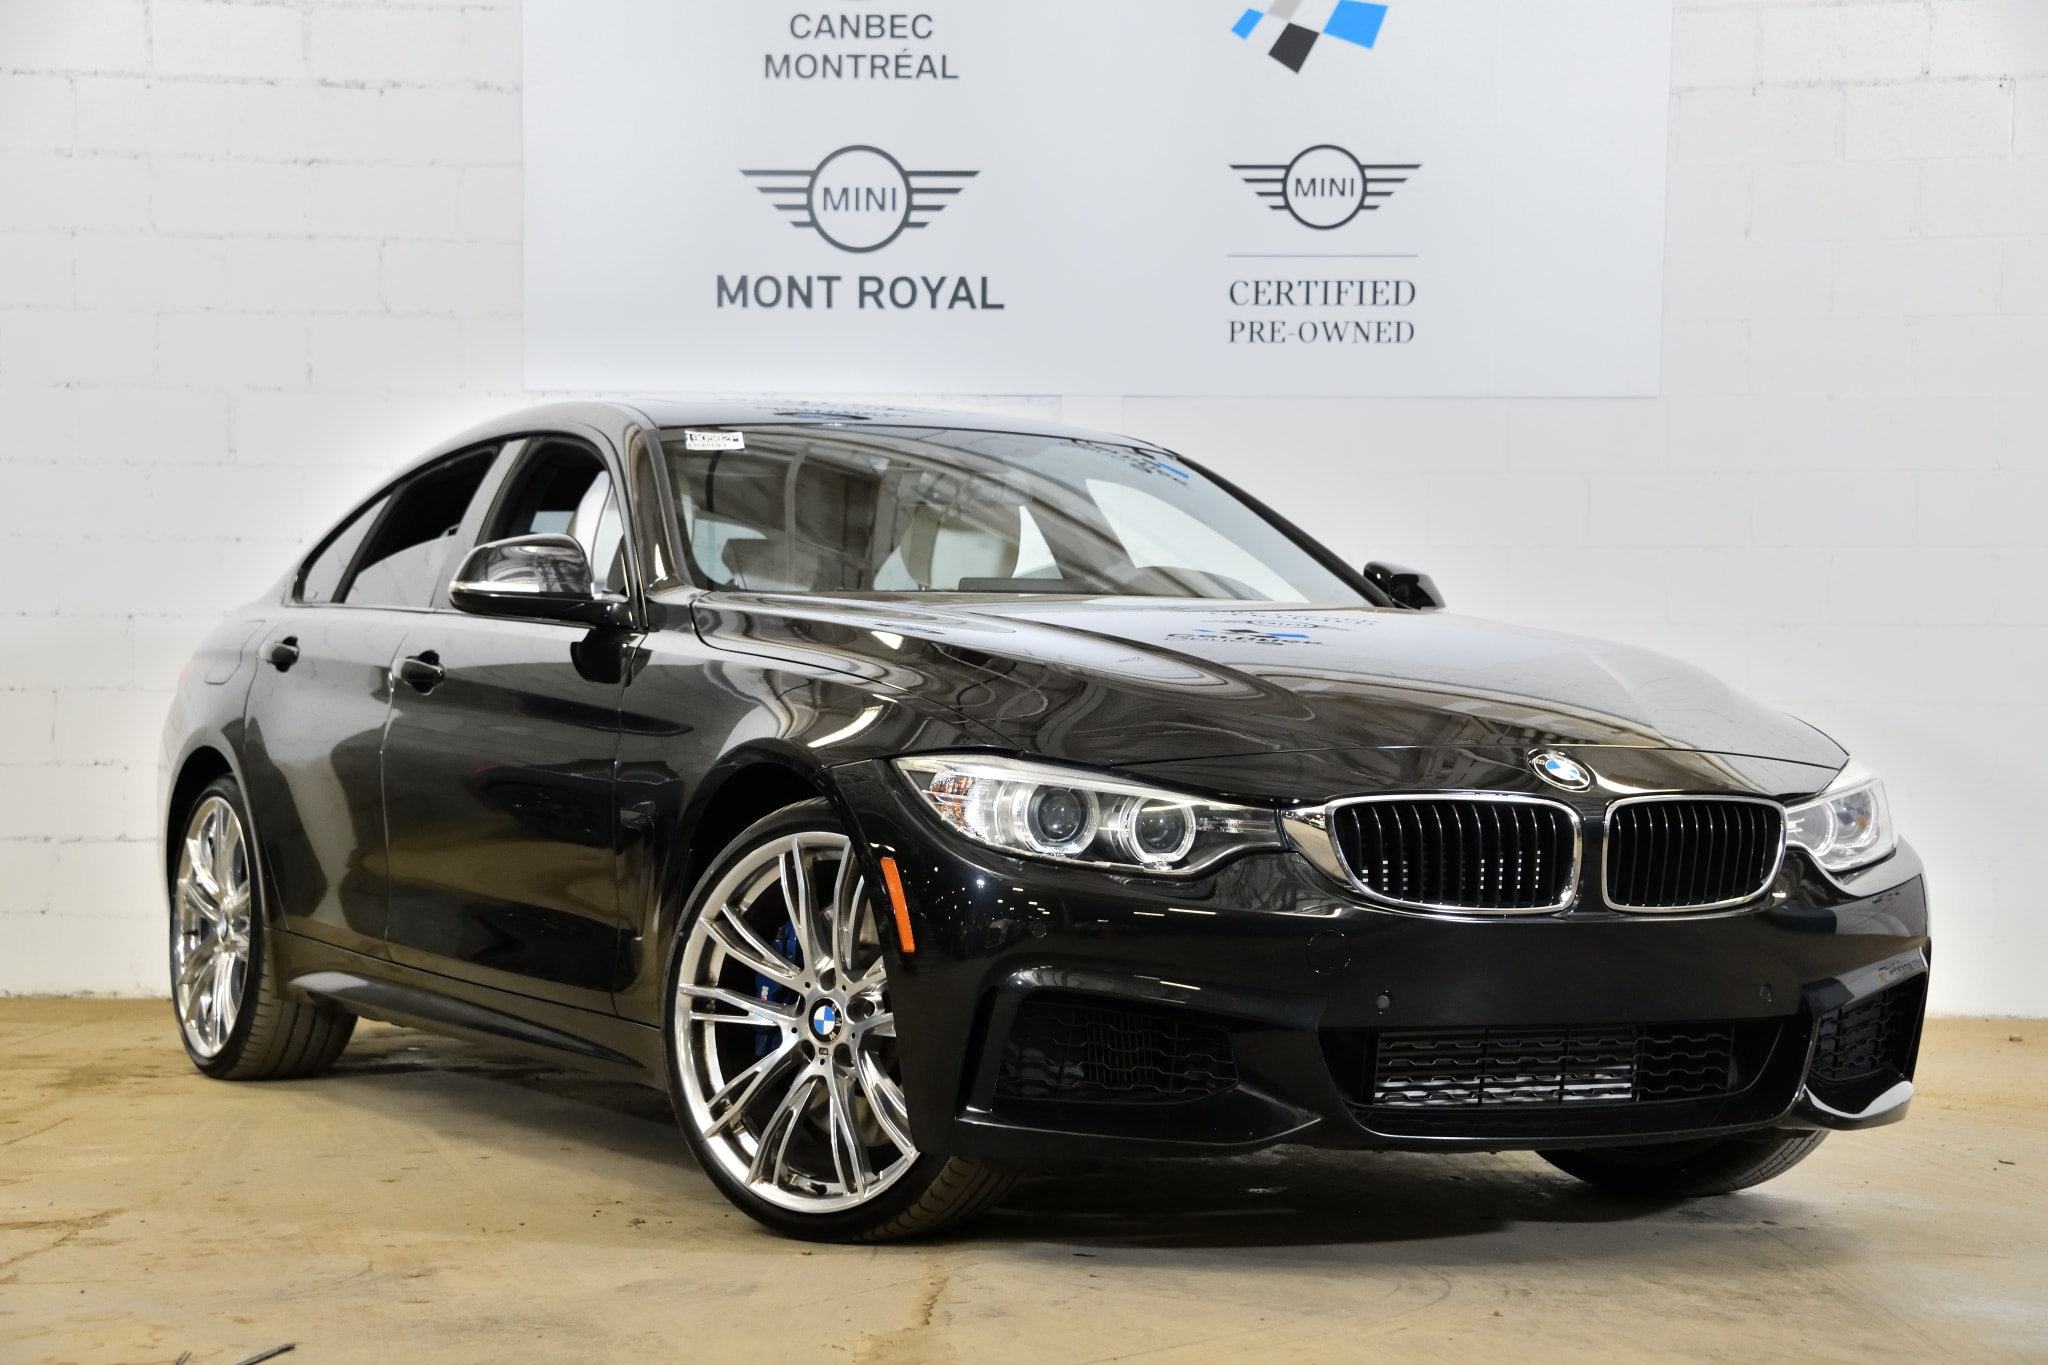 2019 Bmw 435i For Sale In Montreal Qc Bmw Canbec